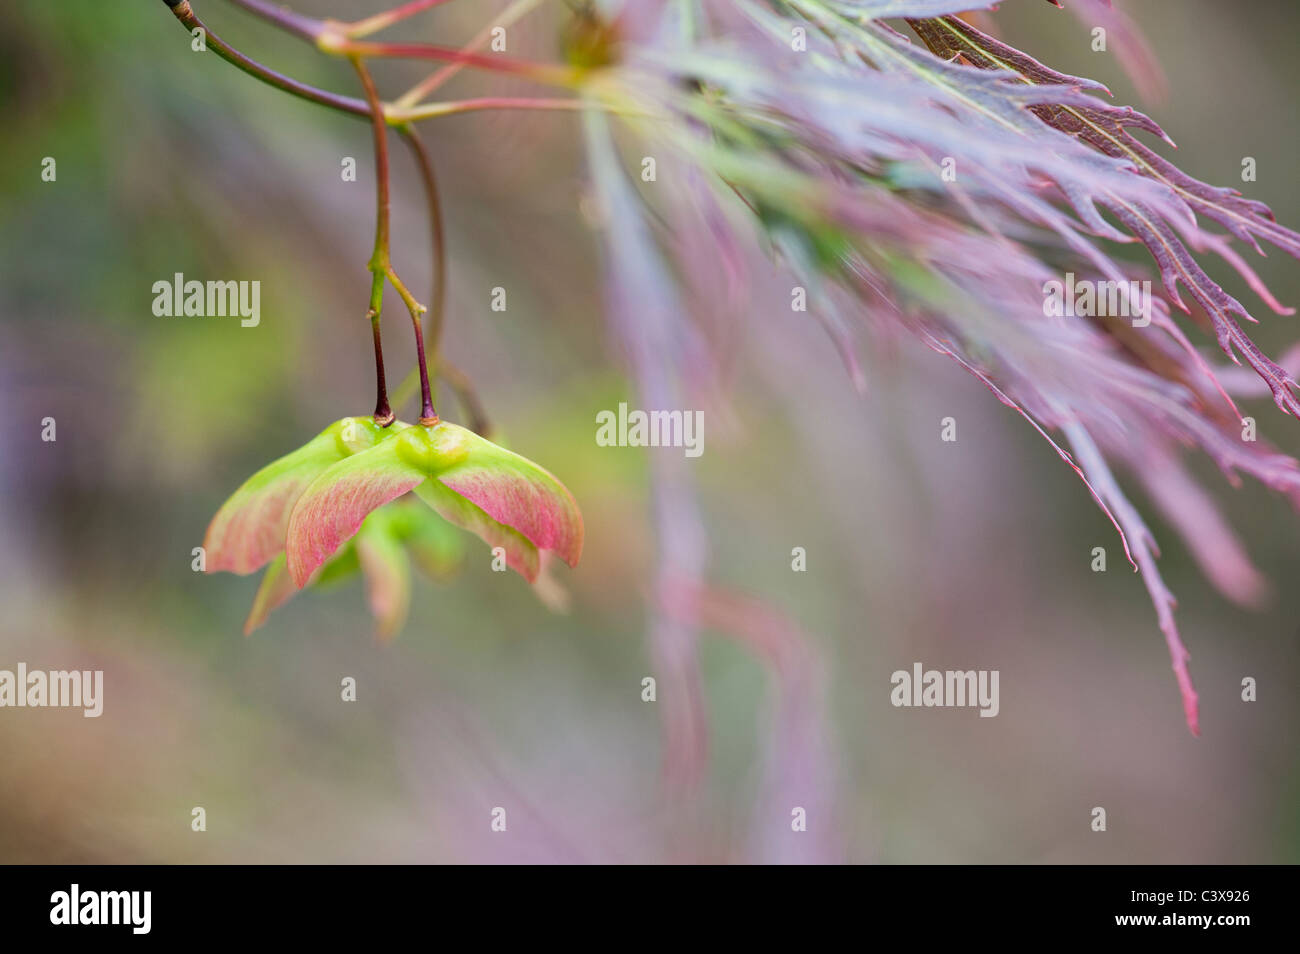 Acer palmatum var. Dissectum. Smooth Japanese maple les feuilles des arbres et les coupelles de semences Photo Stock